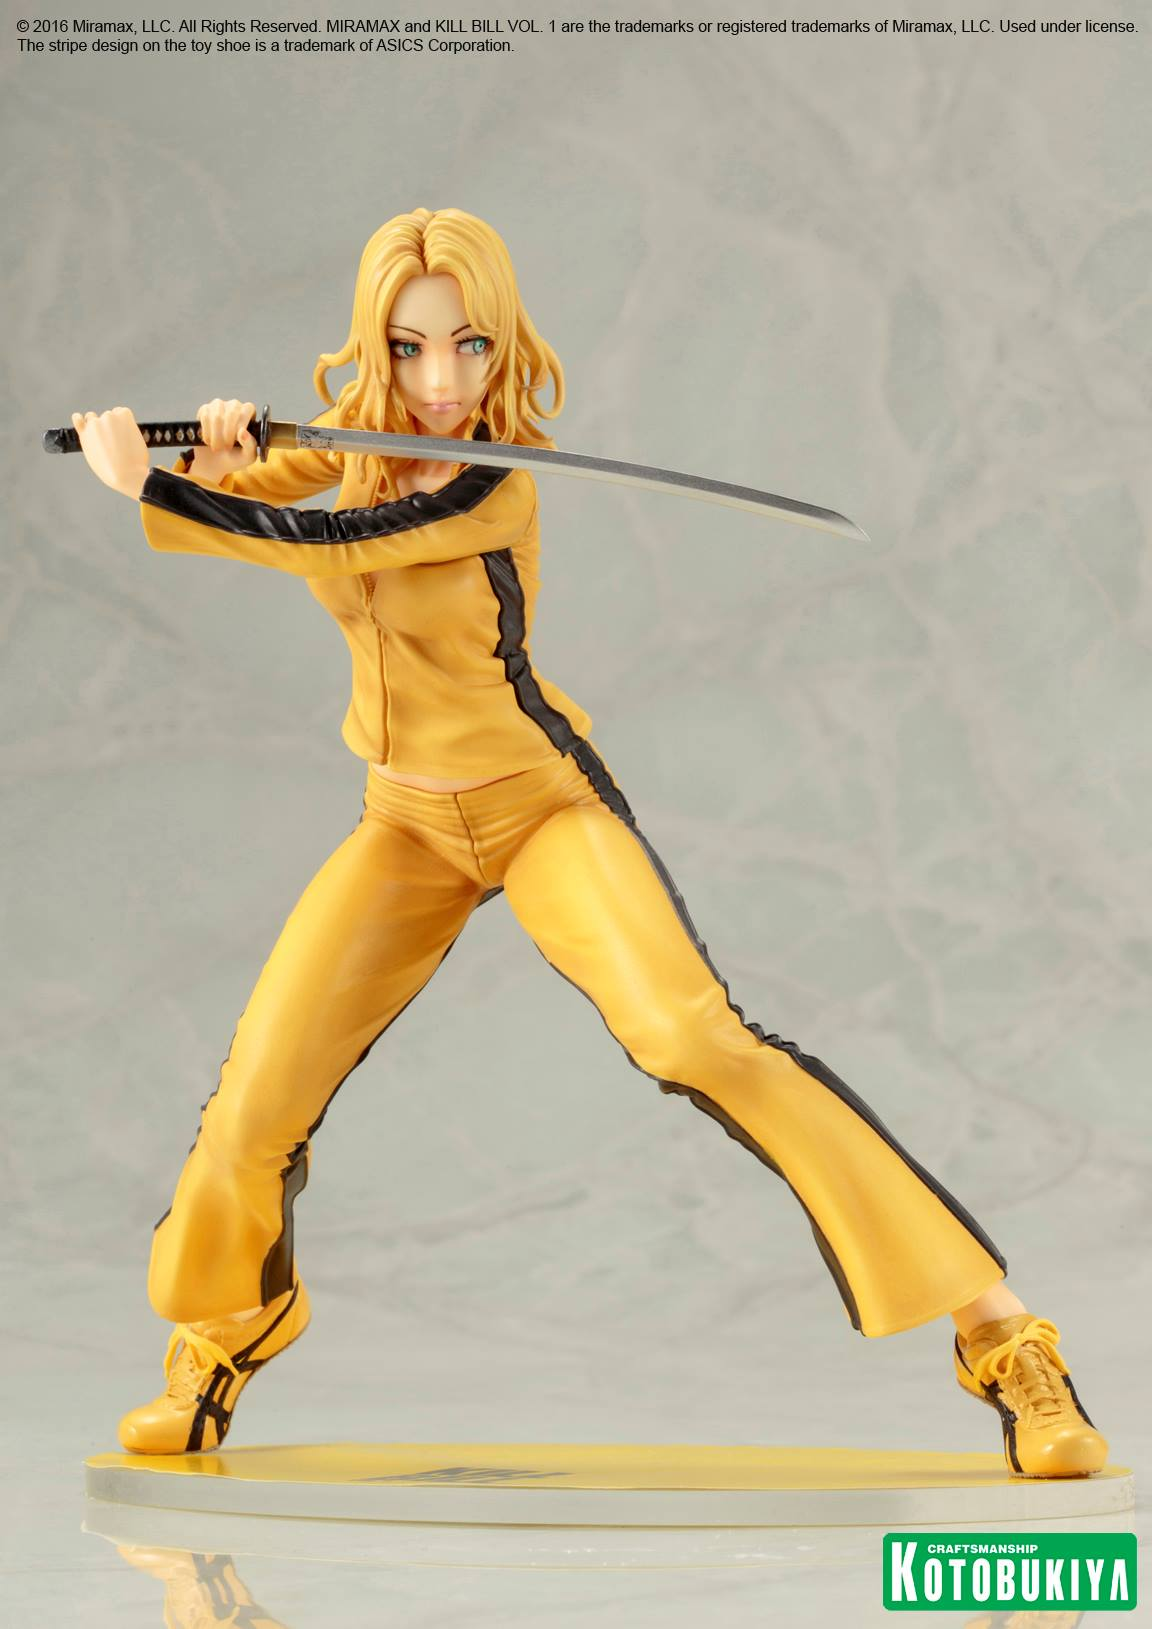 kill-bill-the-bride-bishouoj-statue-kotobukiya-2